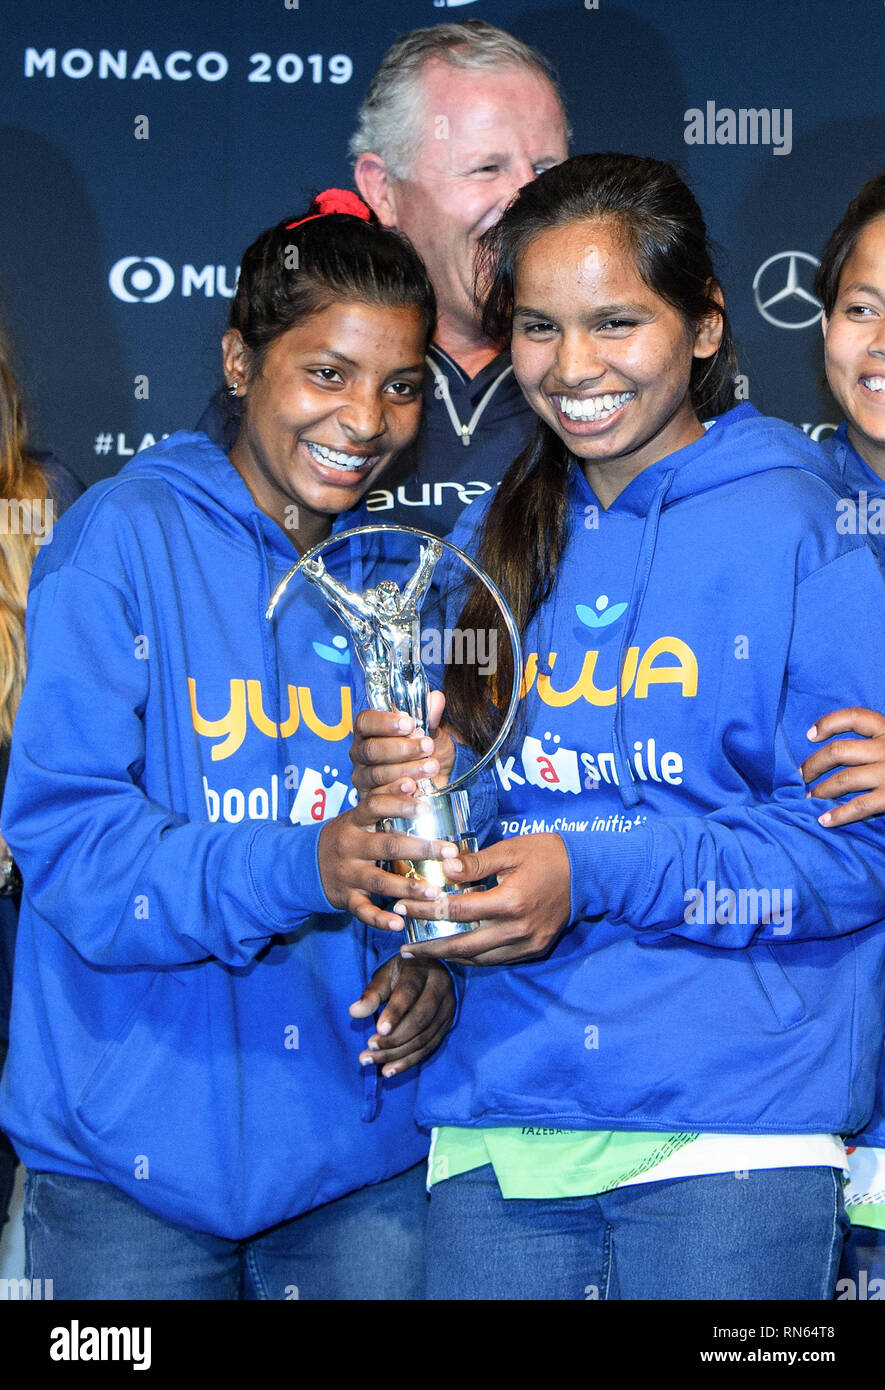 Monaco. 17th Feb, 2019. Prize: Laureus Sport for Good Award 2019: Winner of the trophy is the Indian social sport project Yuwa: The winners left to right Radha and Neeta, football players of the project Yuwa, behind Sean Fitzpatrick (Chairman Laureus). GES/Sports General/Laureus World Sports Awards 2019, 17.02.2019 Sports: Laureus World Sports Awards 2019, February 17, 2019 | usage worldwide Credit: dpa/Alamy Live News - Stock Image